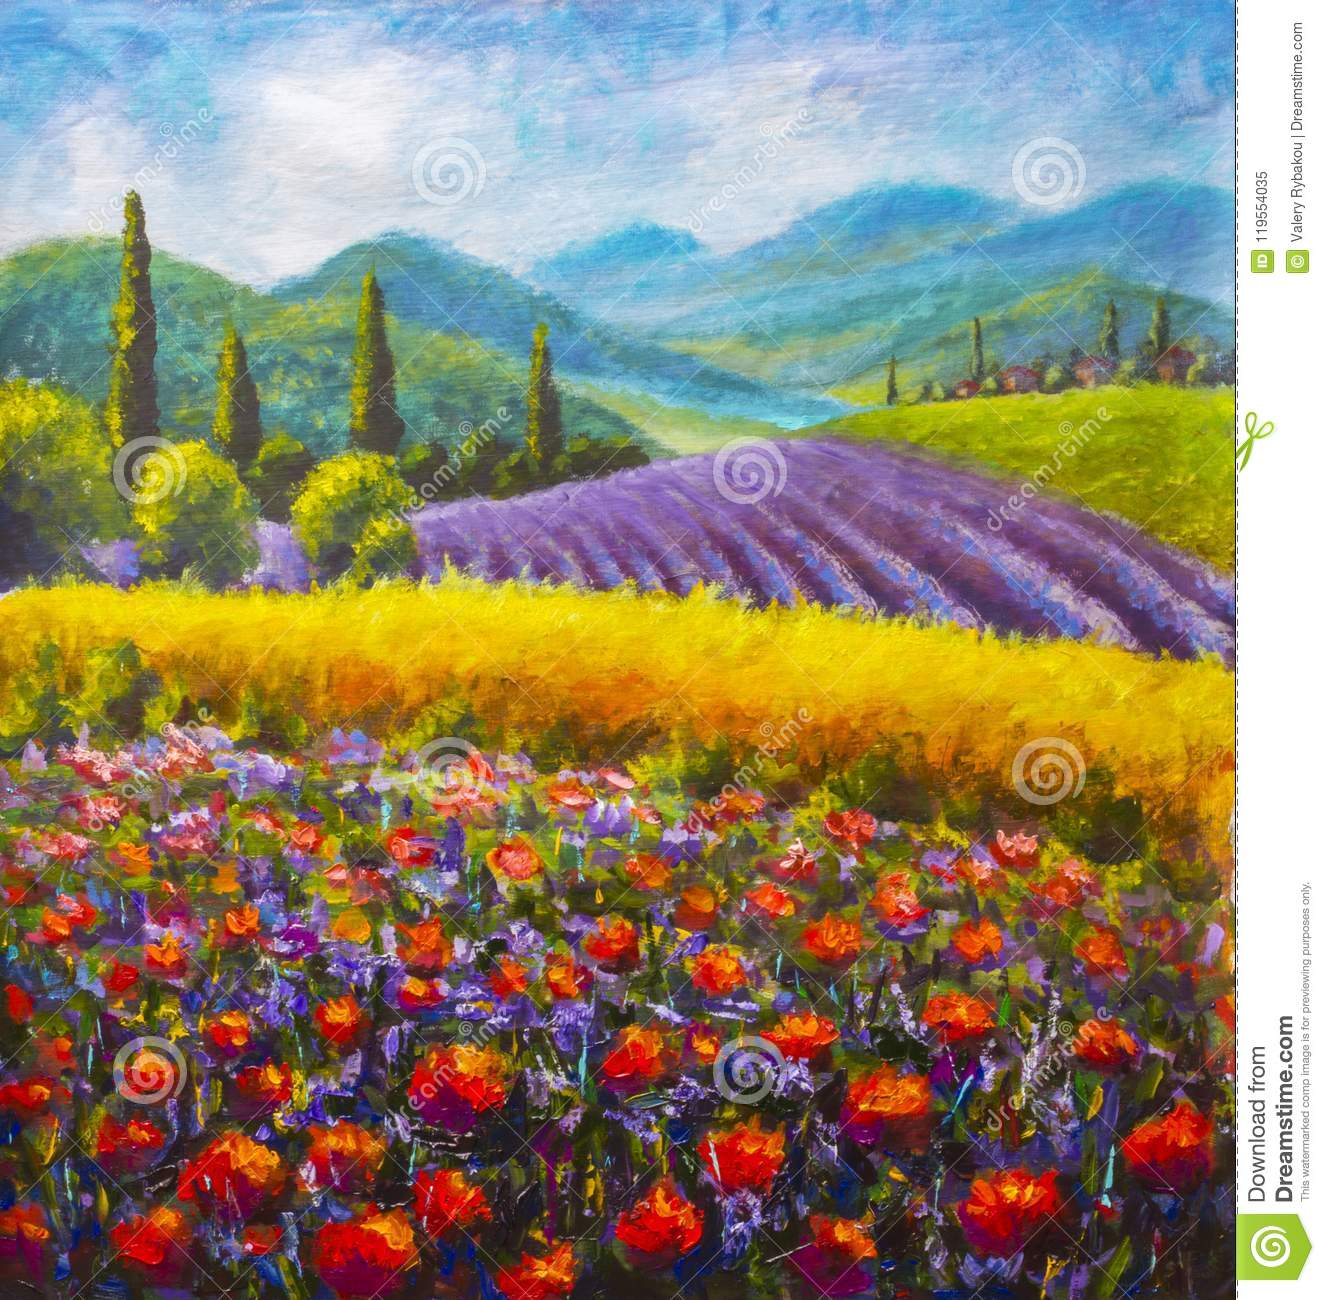 Red poppies painting. Italian summer countryside. French Tuscany. Field of yellow rye. Rural houses and high cypress trees on hill